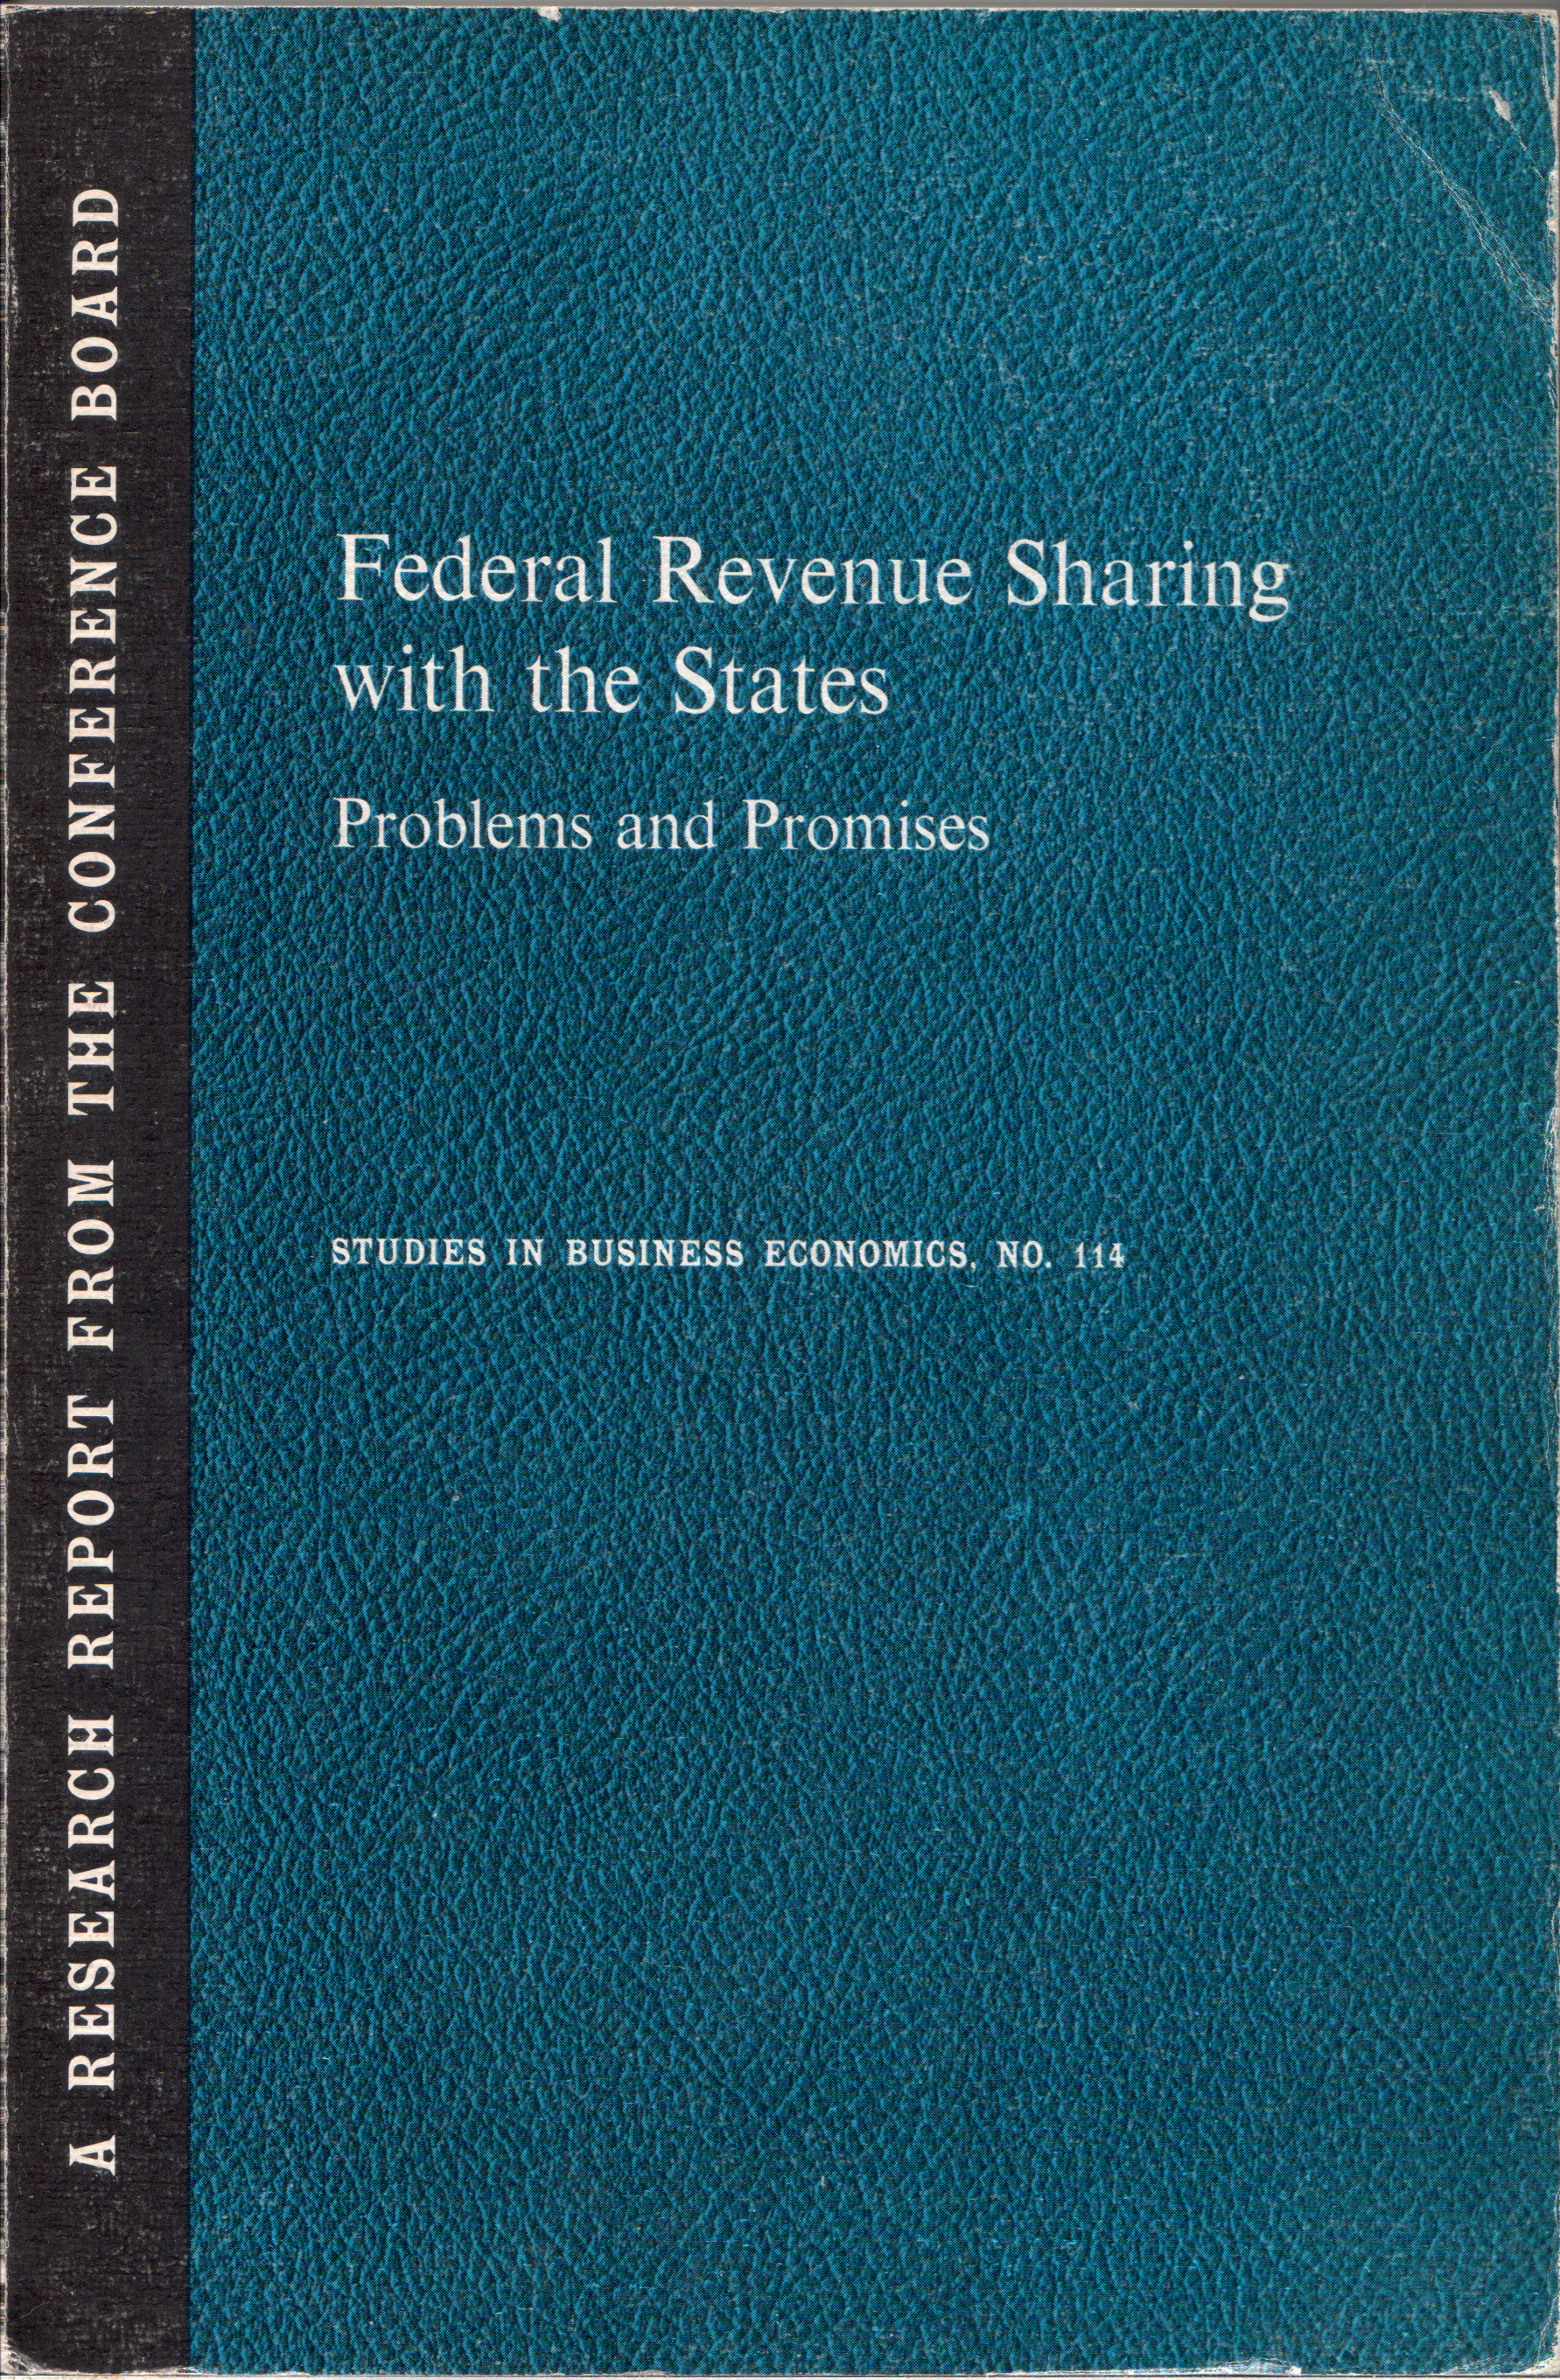 Federal Revenue Sharing with the States: Problems and Promises (Studies in Business Economics, #114) Michael E. Levy